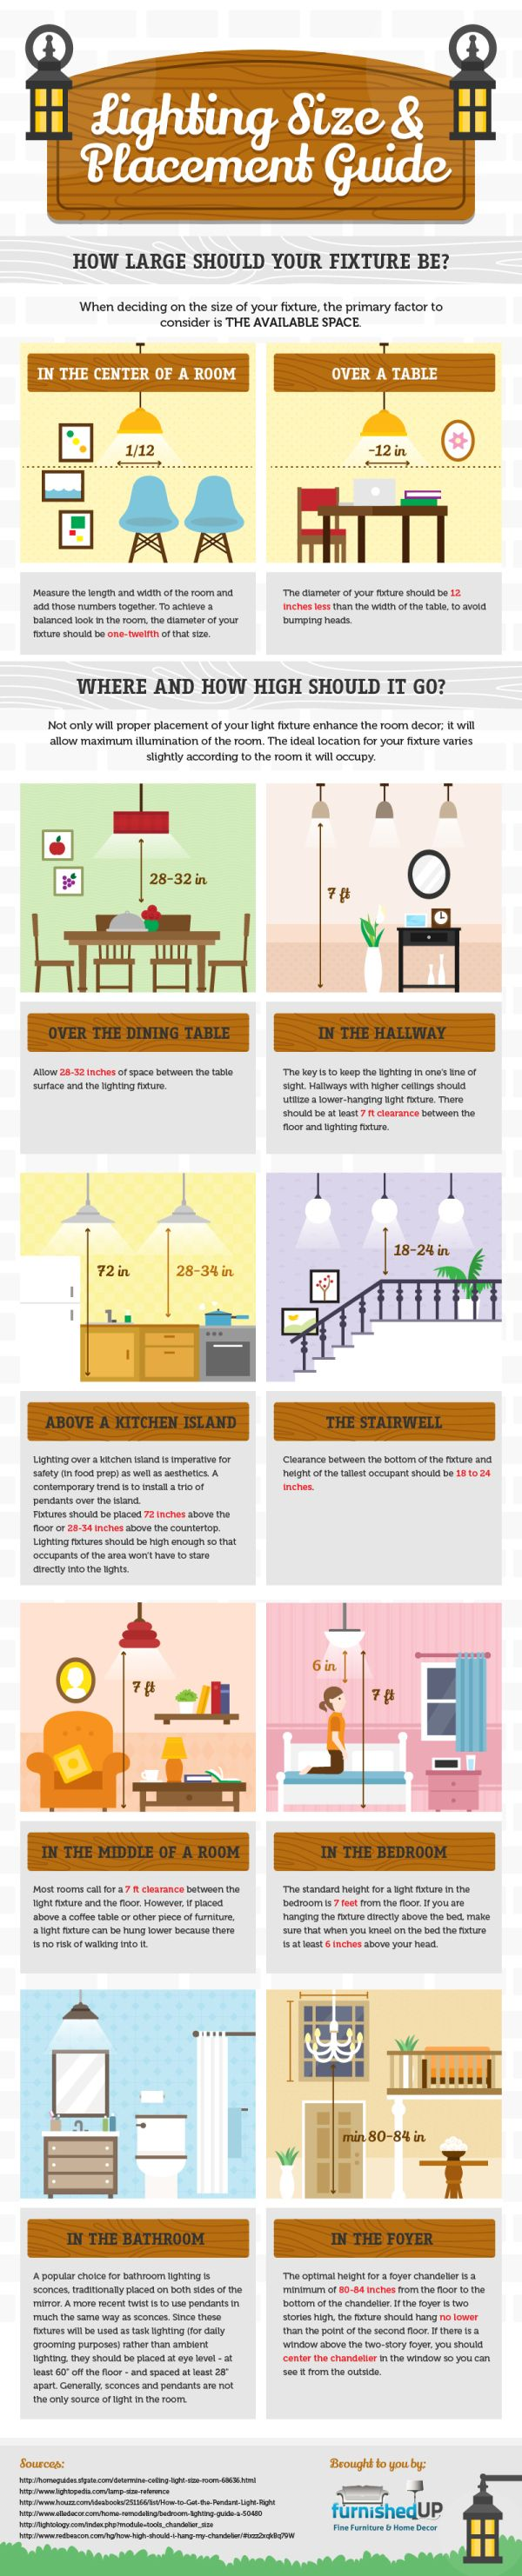 lighting placement guide [INFOGRAPHIC]